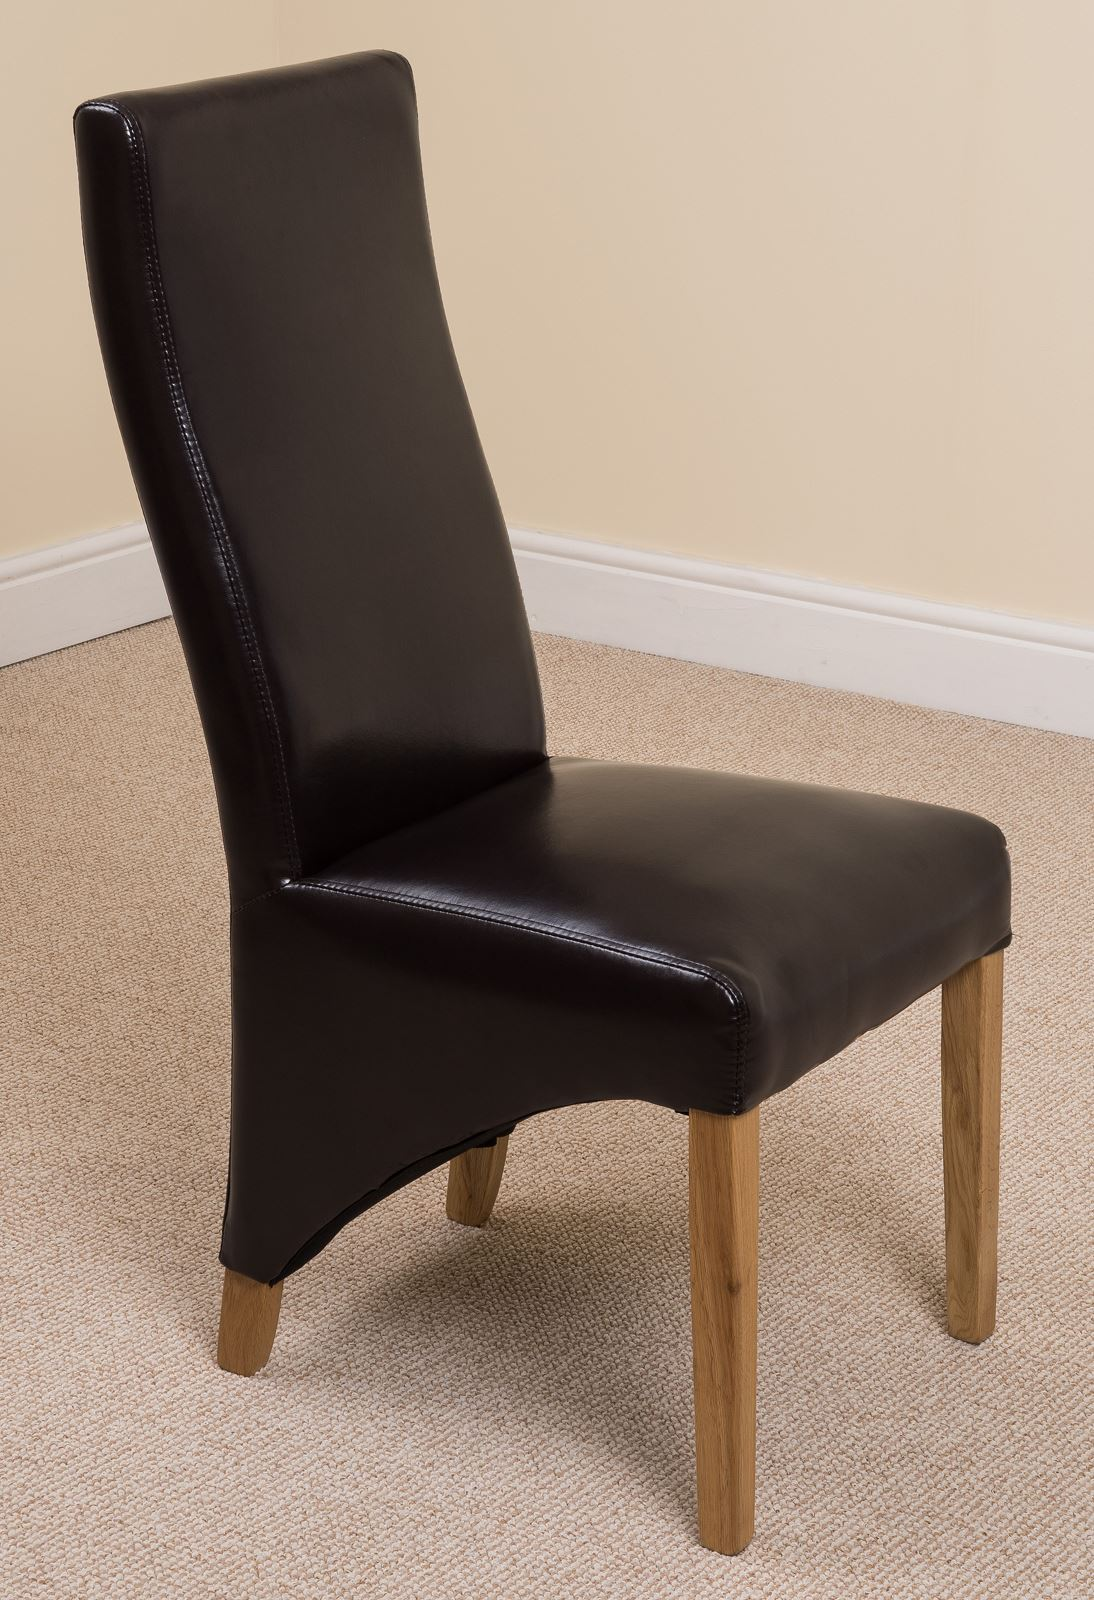 Black Leather Dining Room Chairs Lola Curved Back Black Leather Dining Room Kitchen Chairs